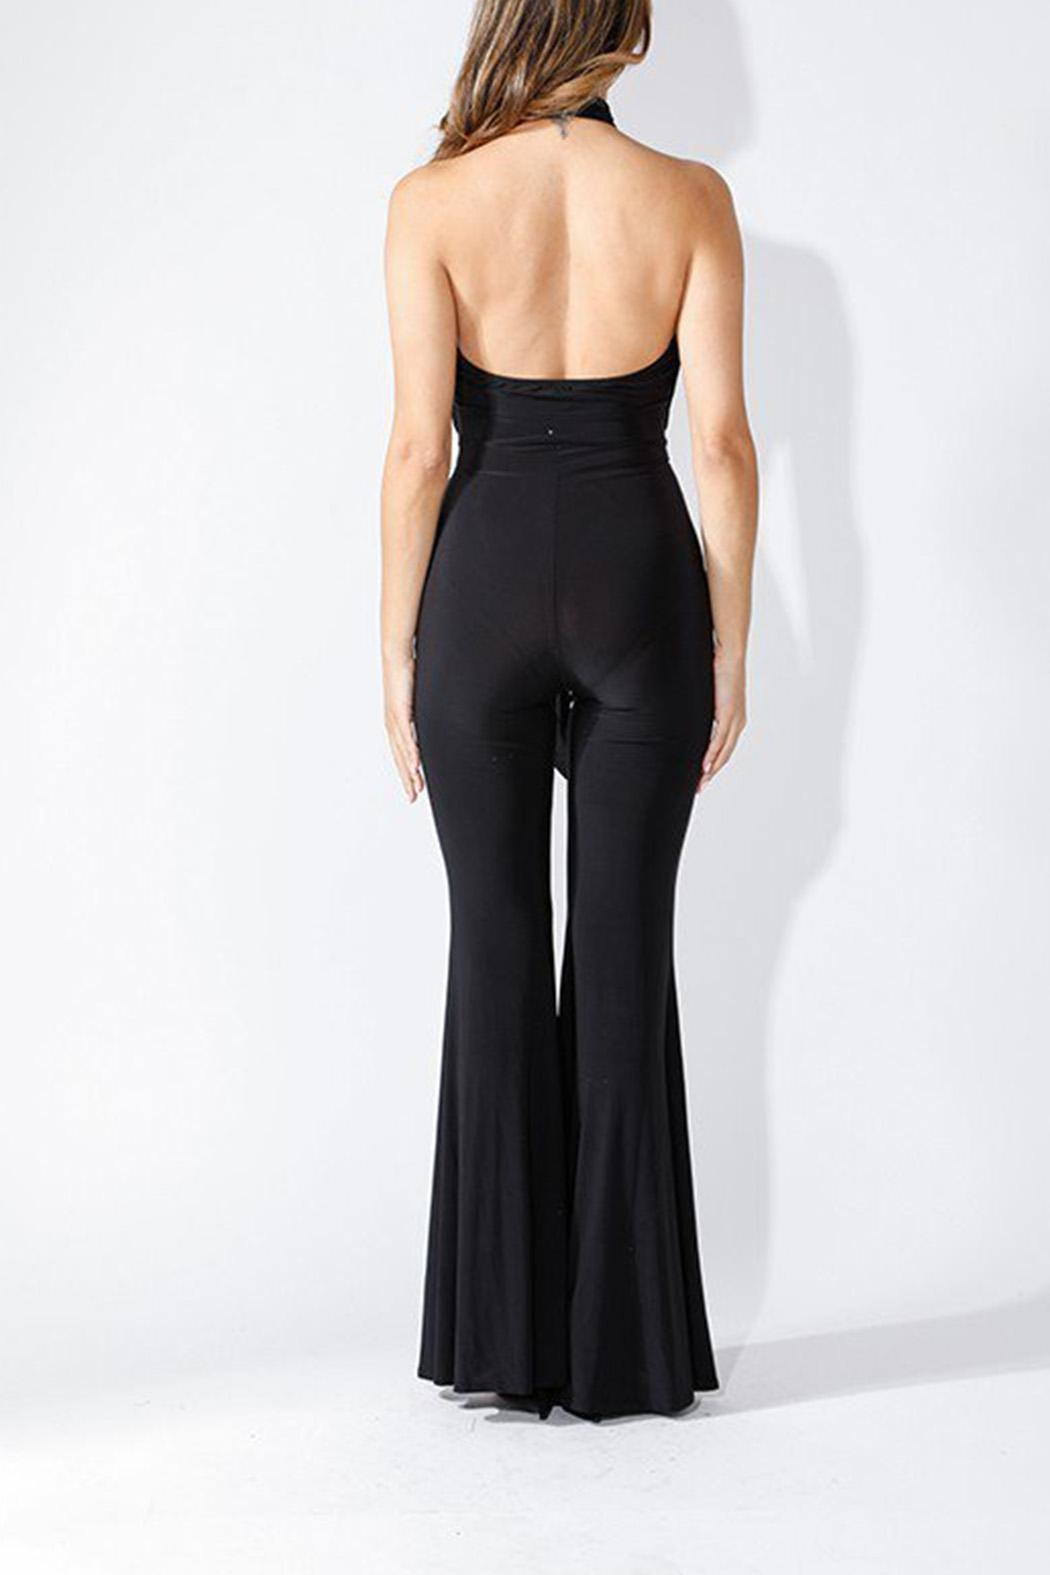 K too Crossed Front Jumpsuit - Side Cropped Image